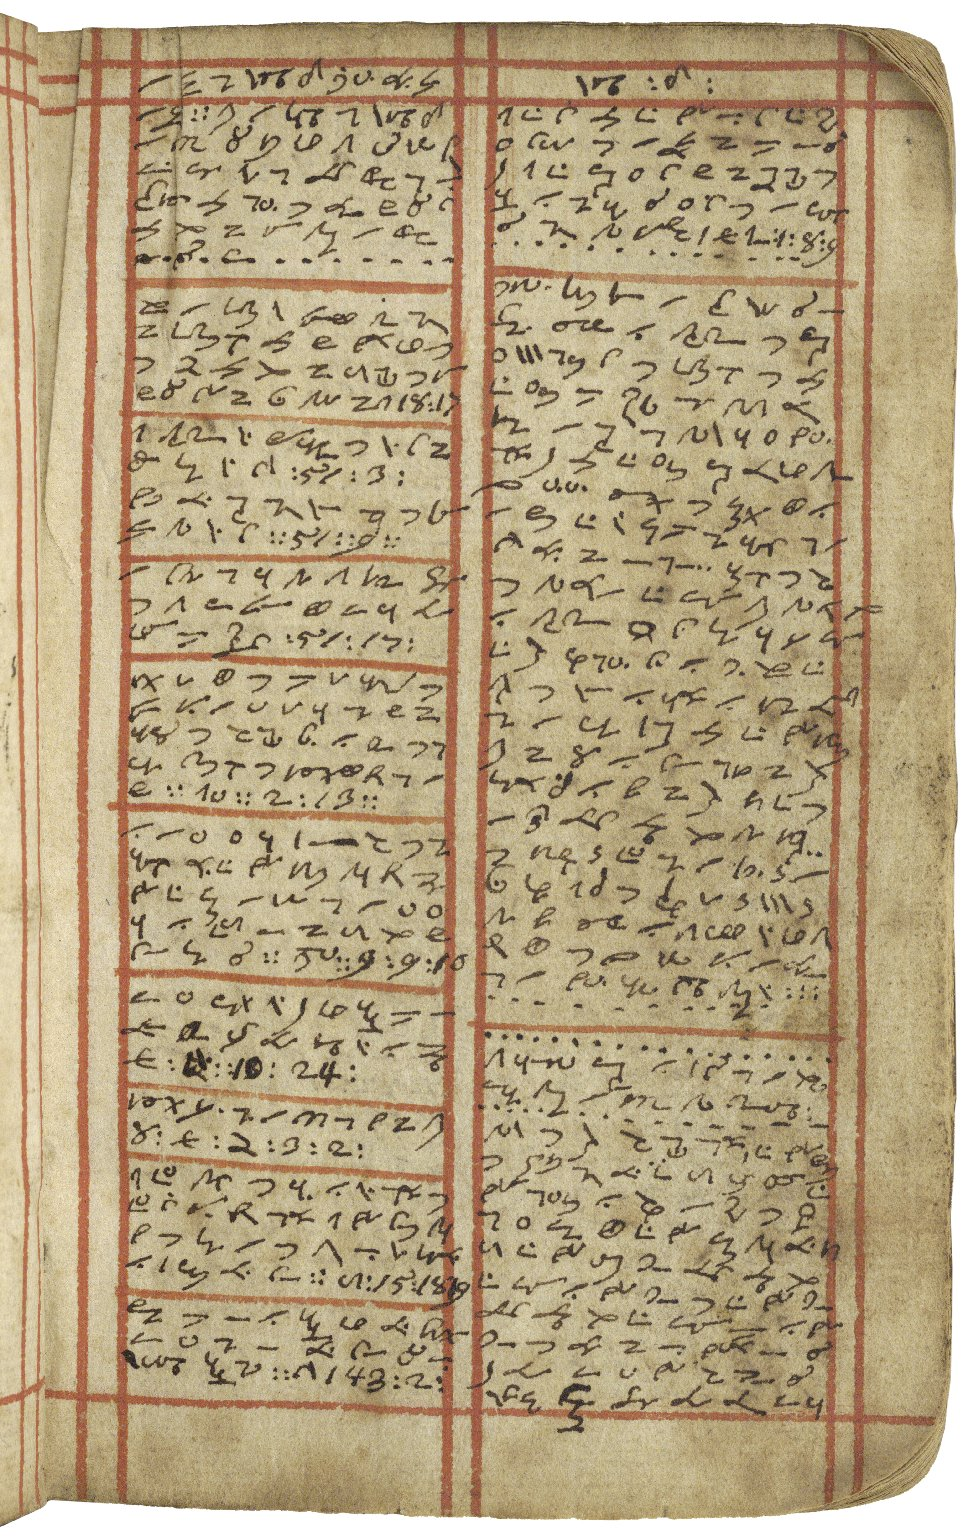 The Book of Common Prayer and Administration of the Sacraments and Other Rites and Ceremonies of the Church of England. With the Psalter or Psalms of David. Pointed as they are to be Sung or said in Churches. [And] The New Testament of Our Lord and Saviour Jesus Christ. Late 17th-century. [manuscript]